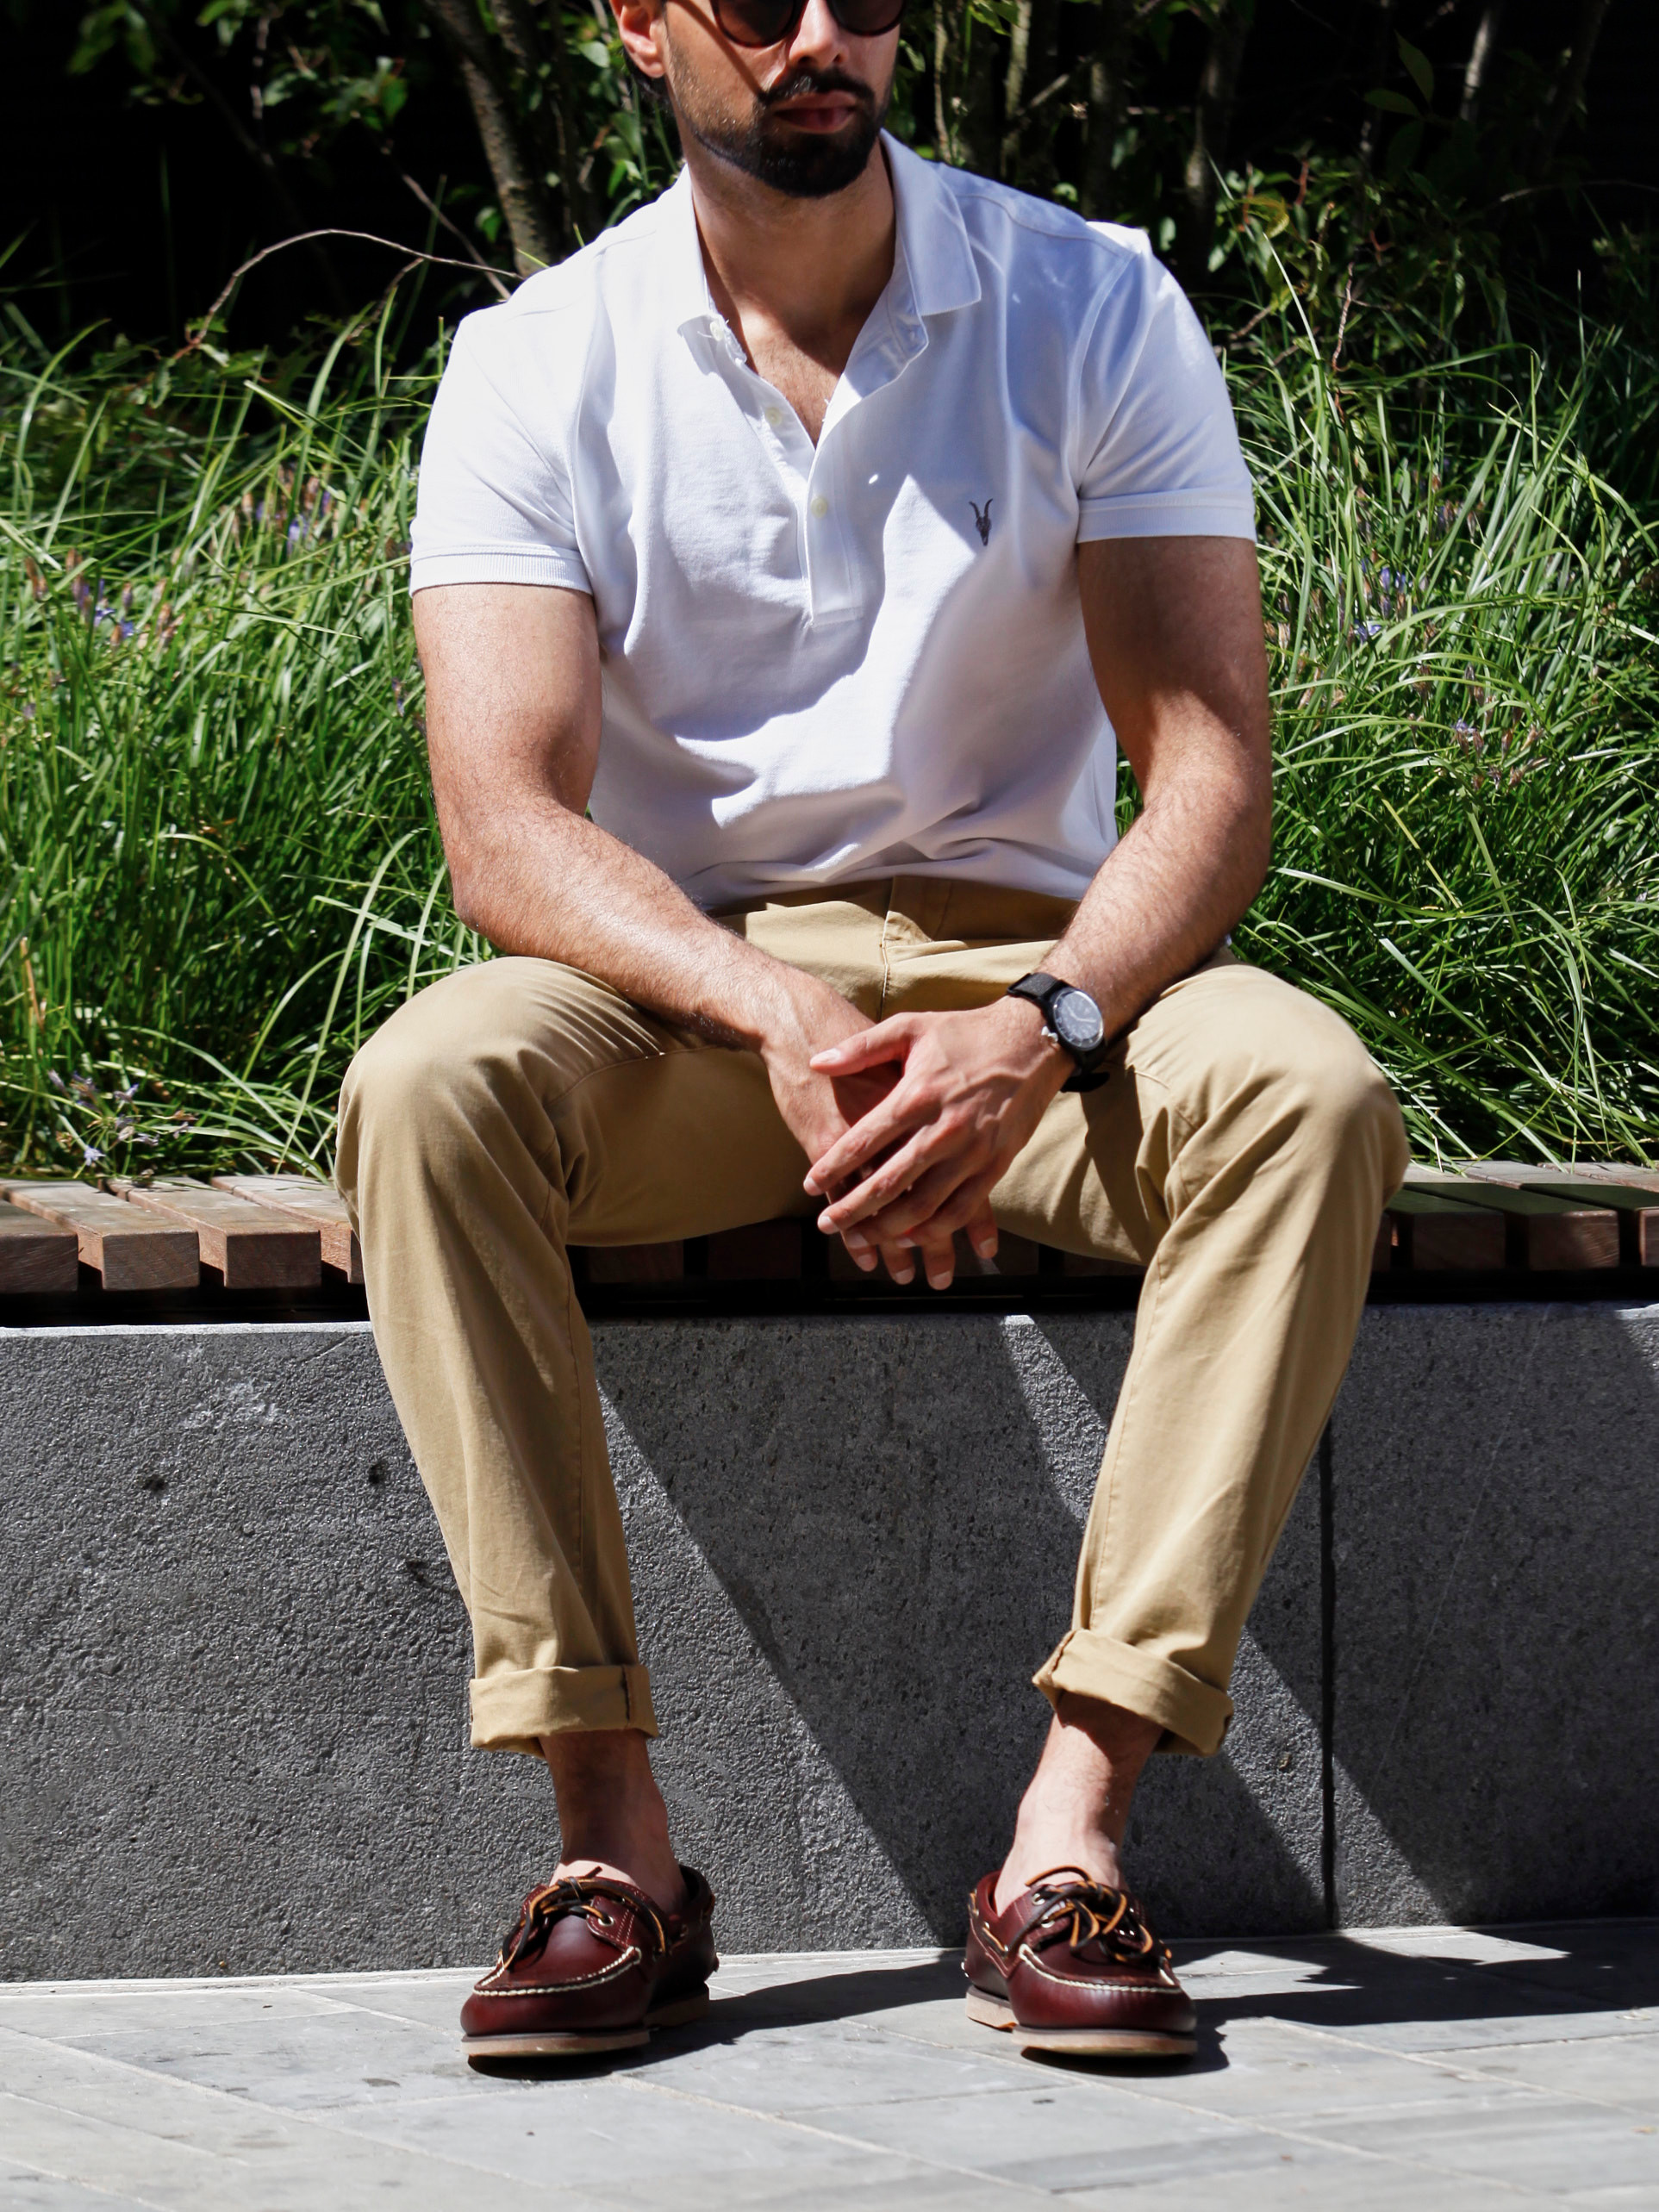 Men's outfit idea for 2021 with white polo, stone chinos, brown boat shoes. Suitable for spring and summer.